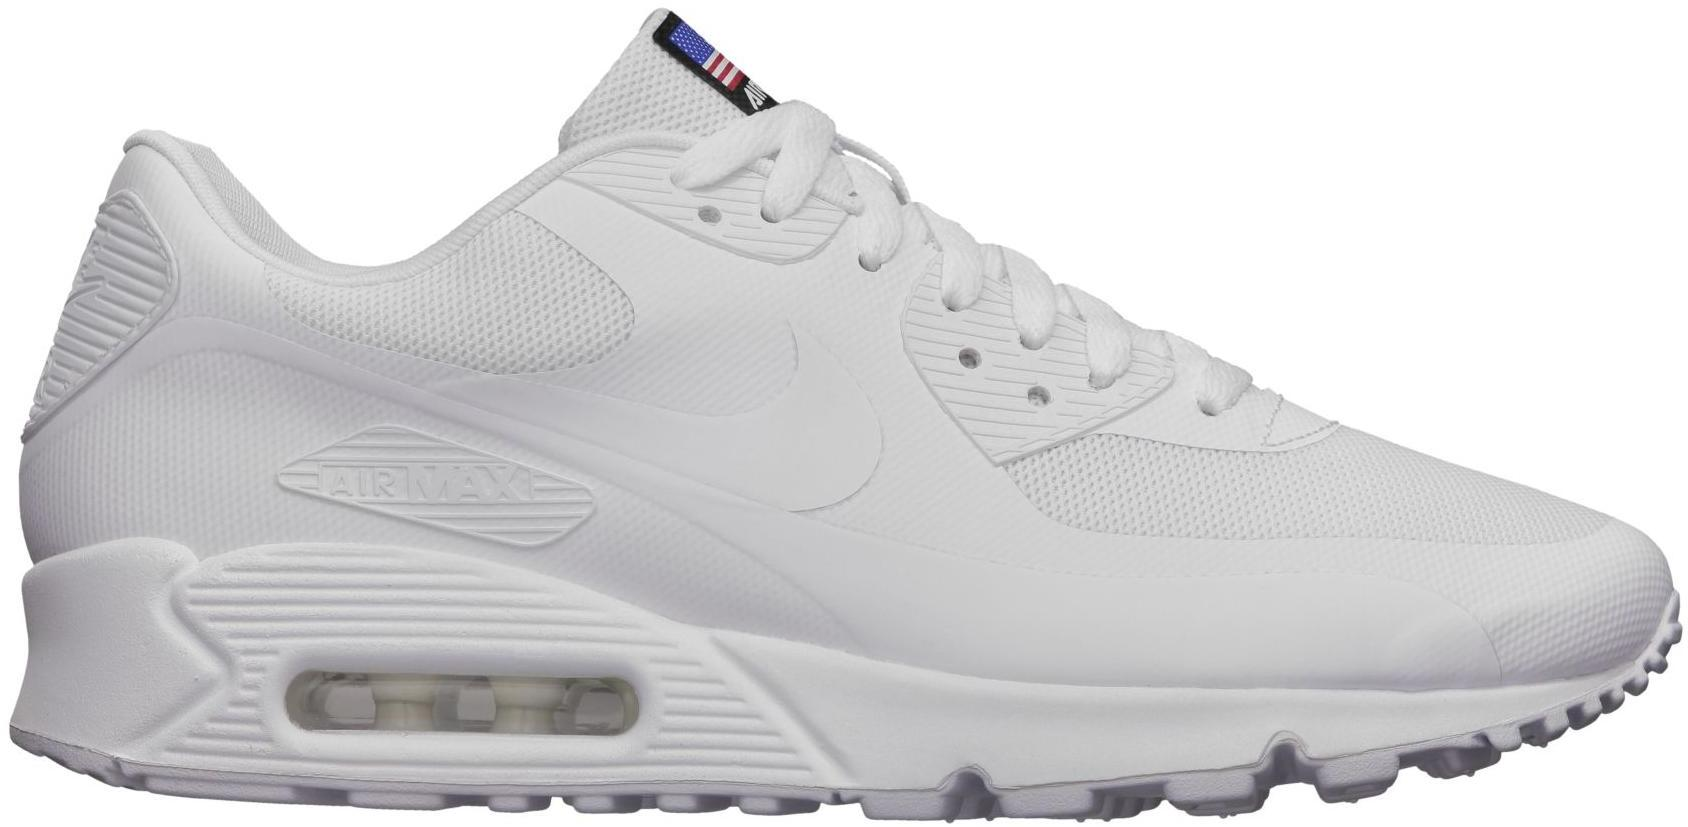 Air Max 90 Hyperfuse Independence Day White